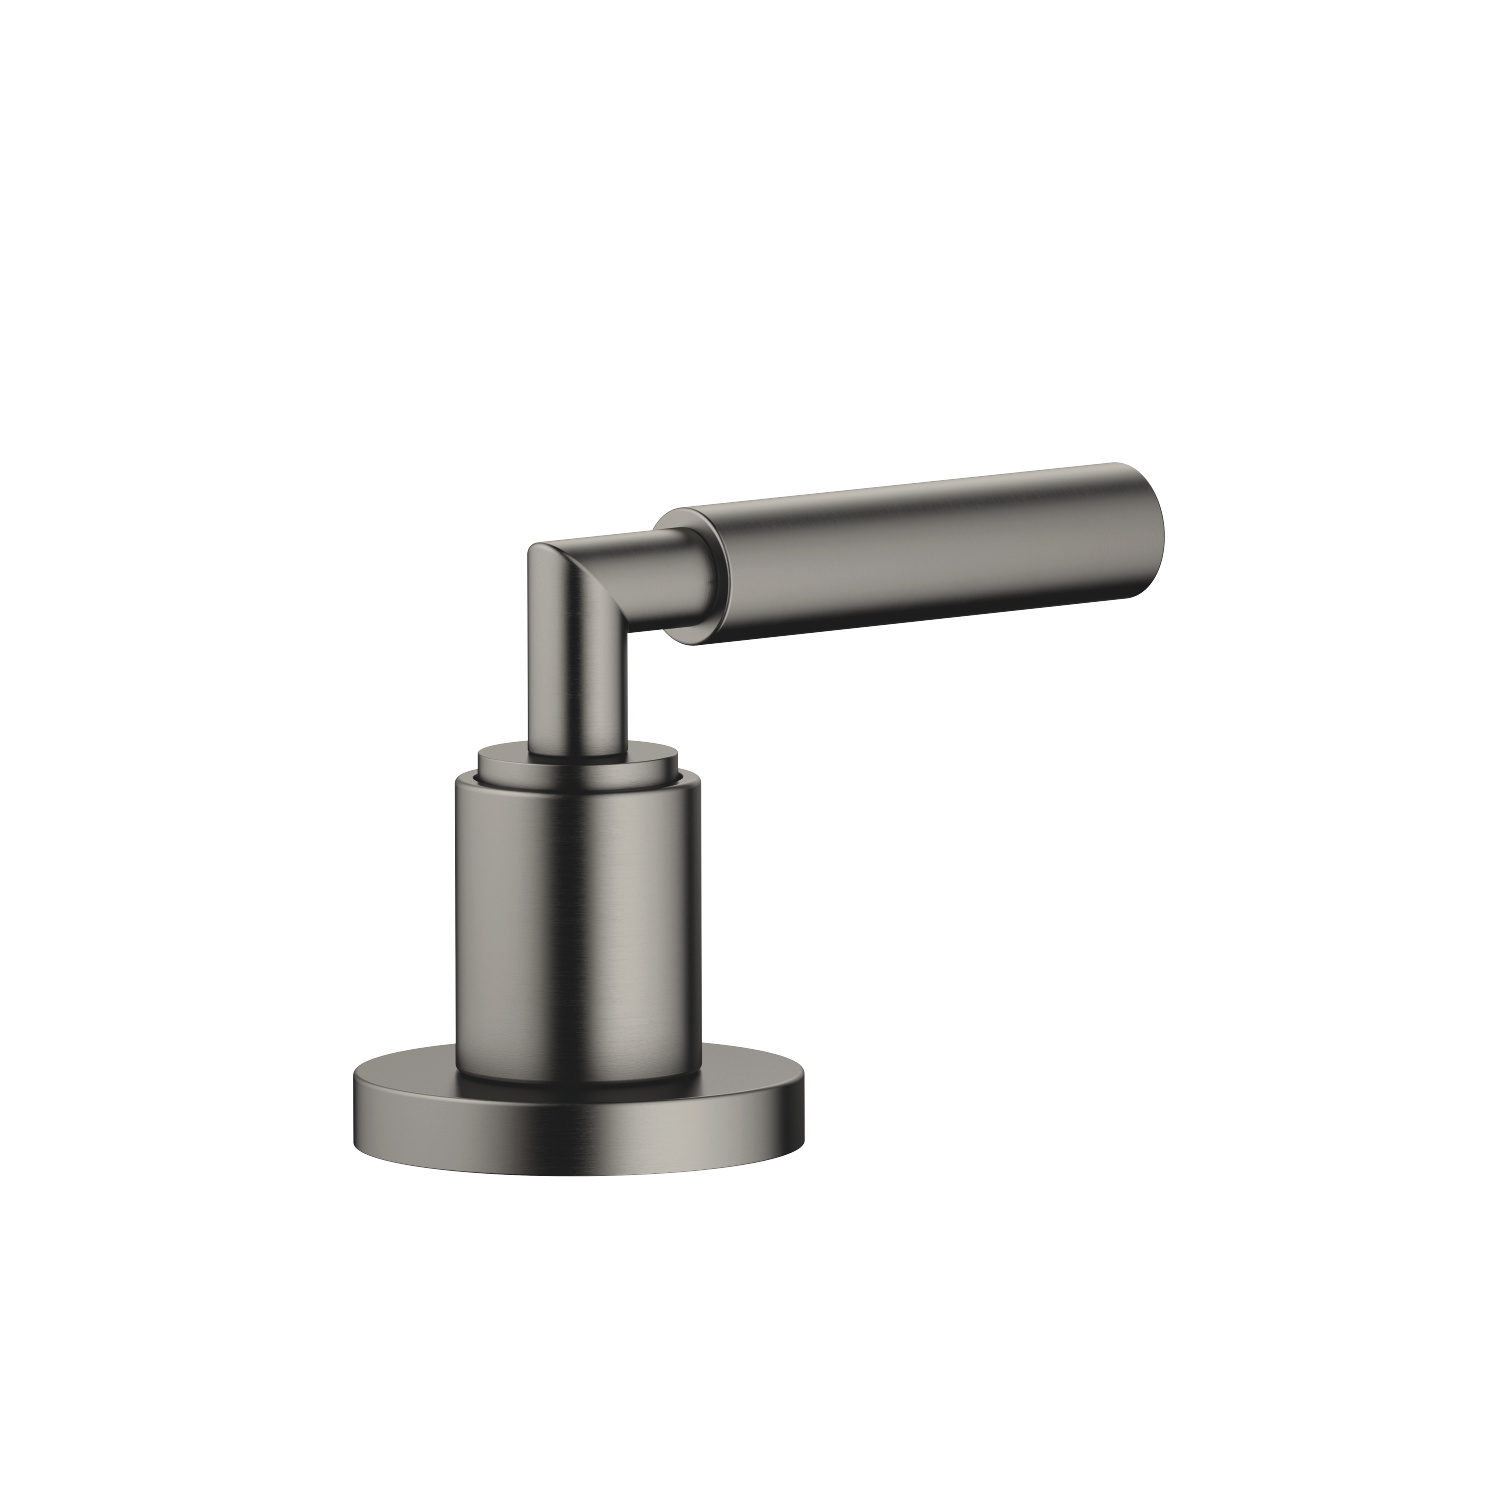 Deck valve anti-clockwise closing - Dark Platinum matt